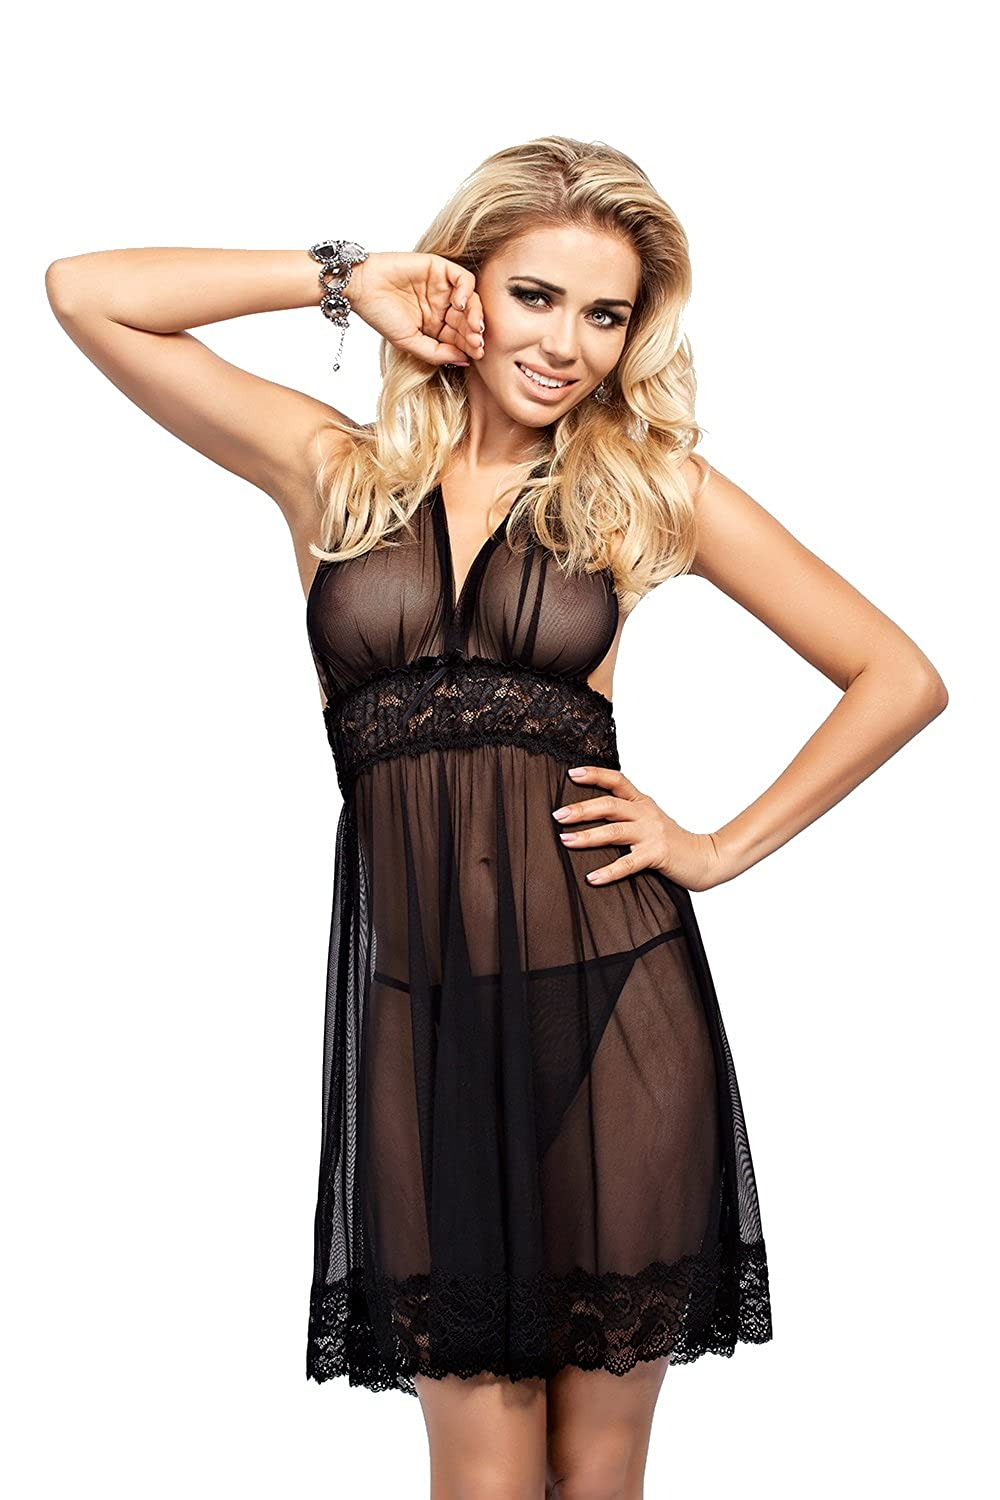 Lady-Mode Dessous-Set Wäsche-Set aus Tüll Eryka (XS - 2XL)